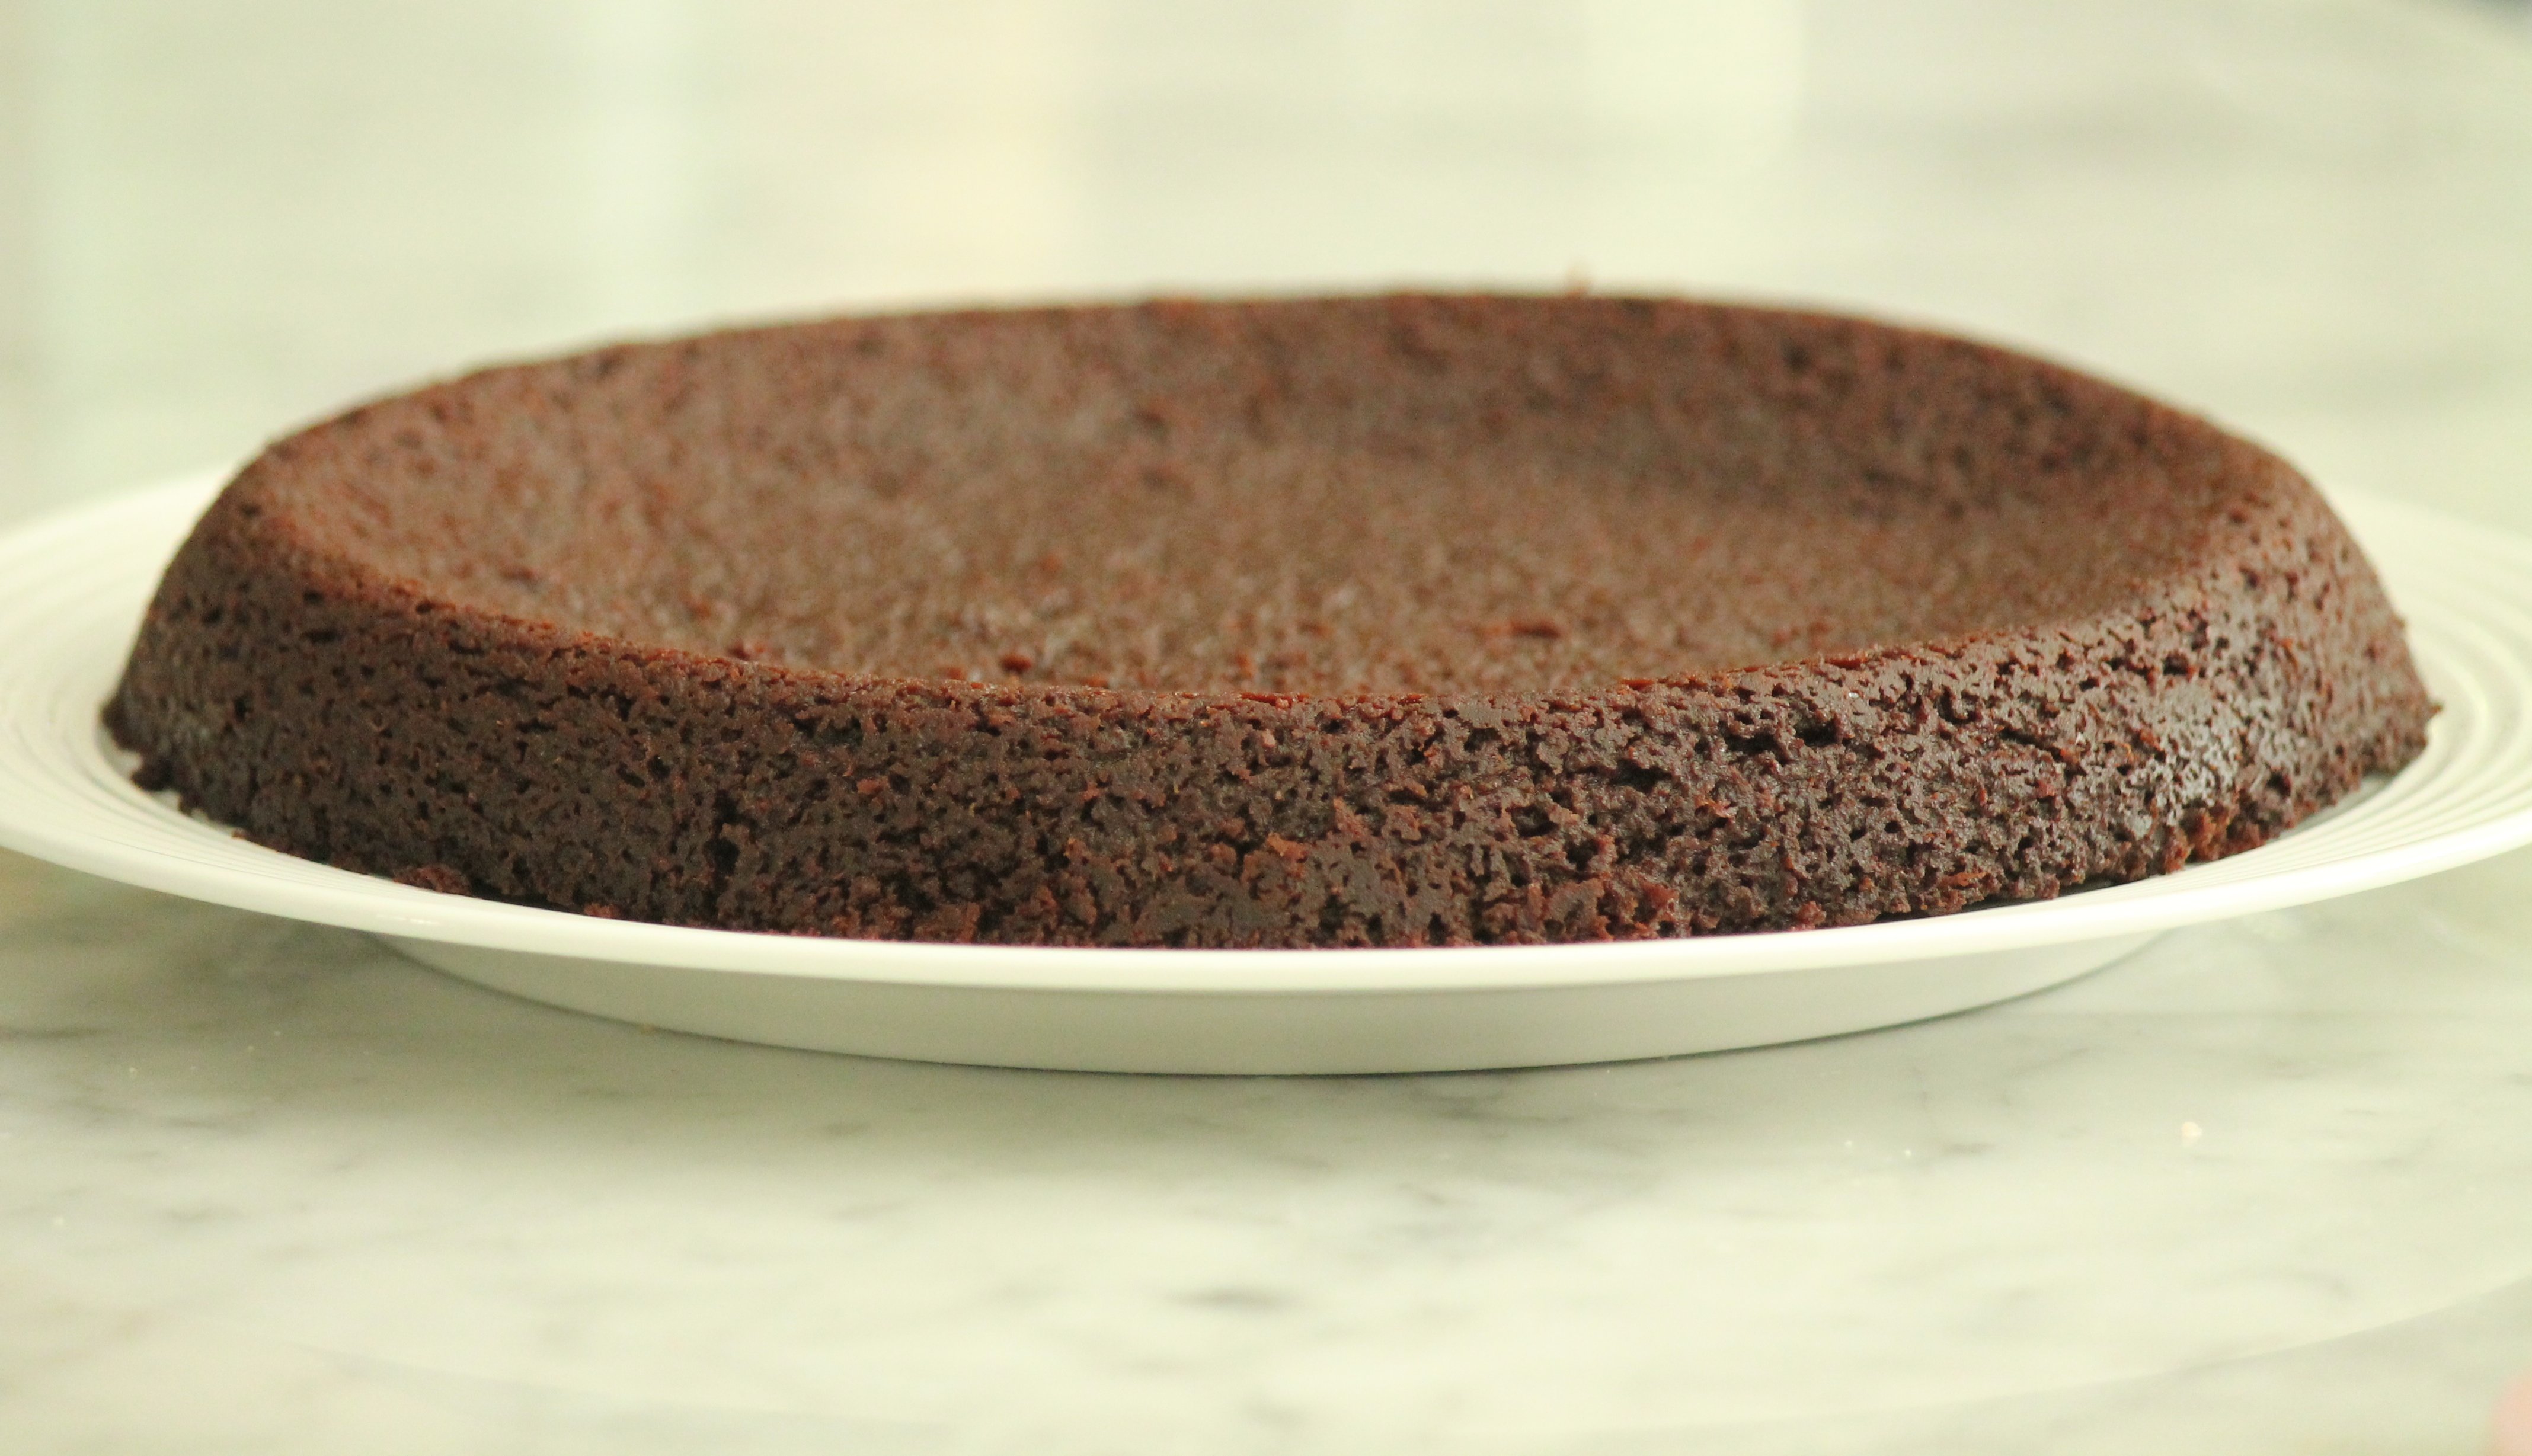 Winning Hearts and Minds Chocolate Cake - Key Ingredients